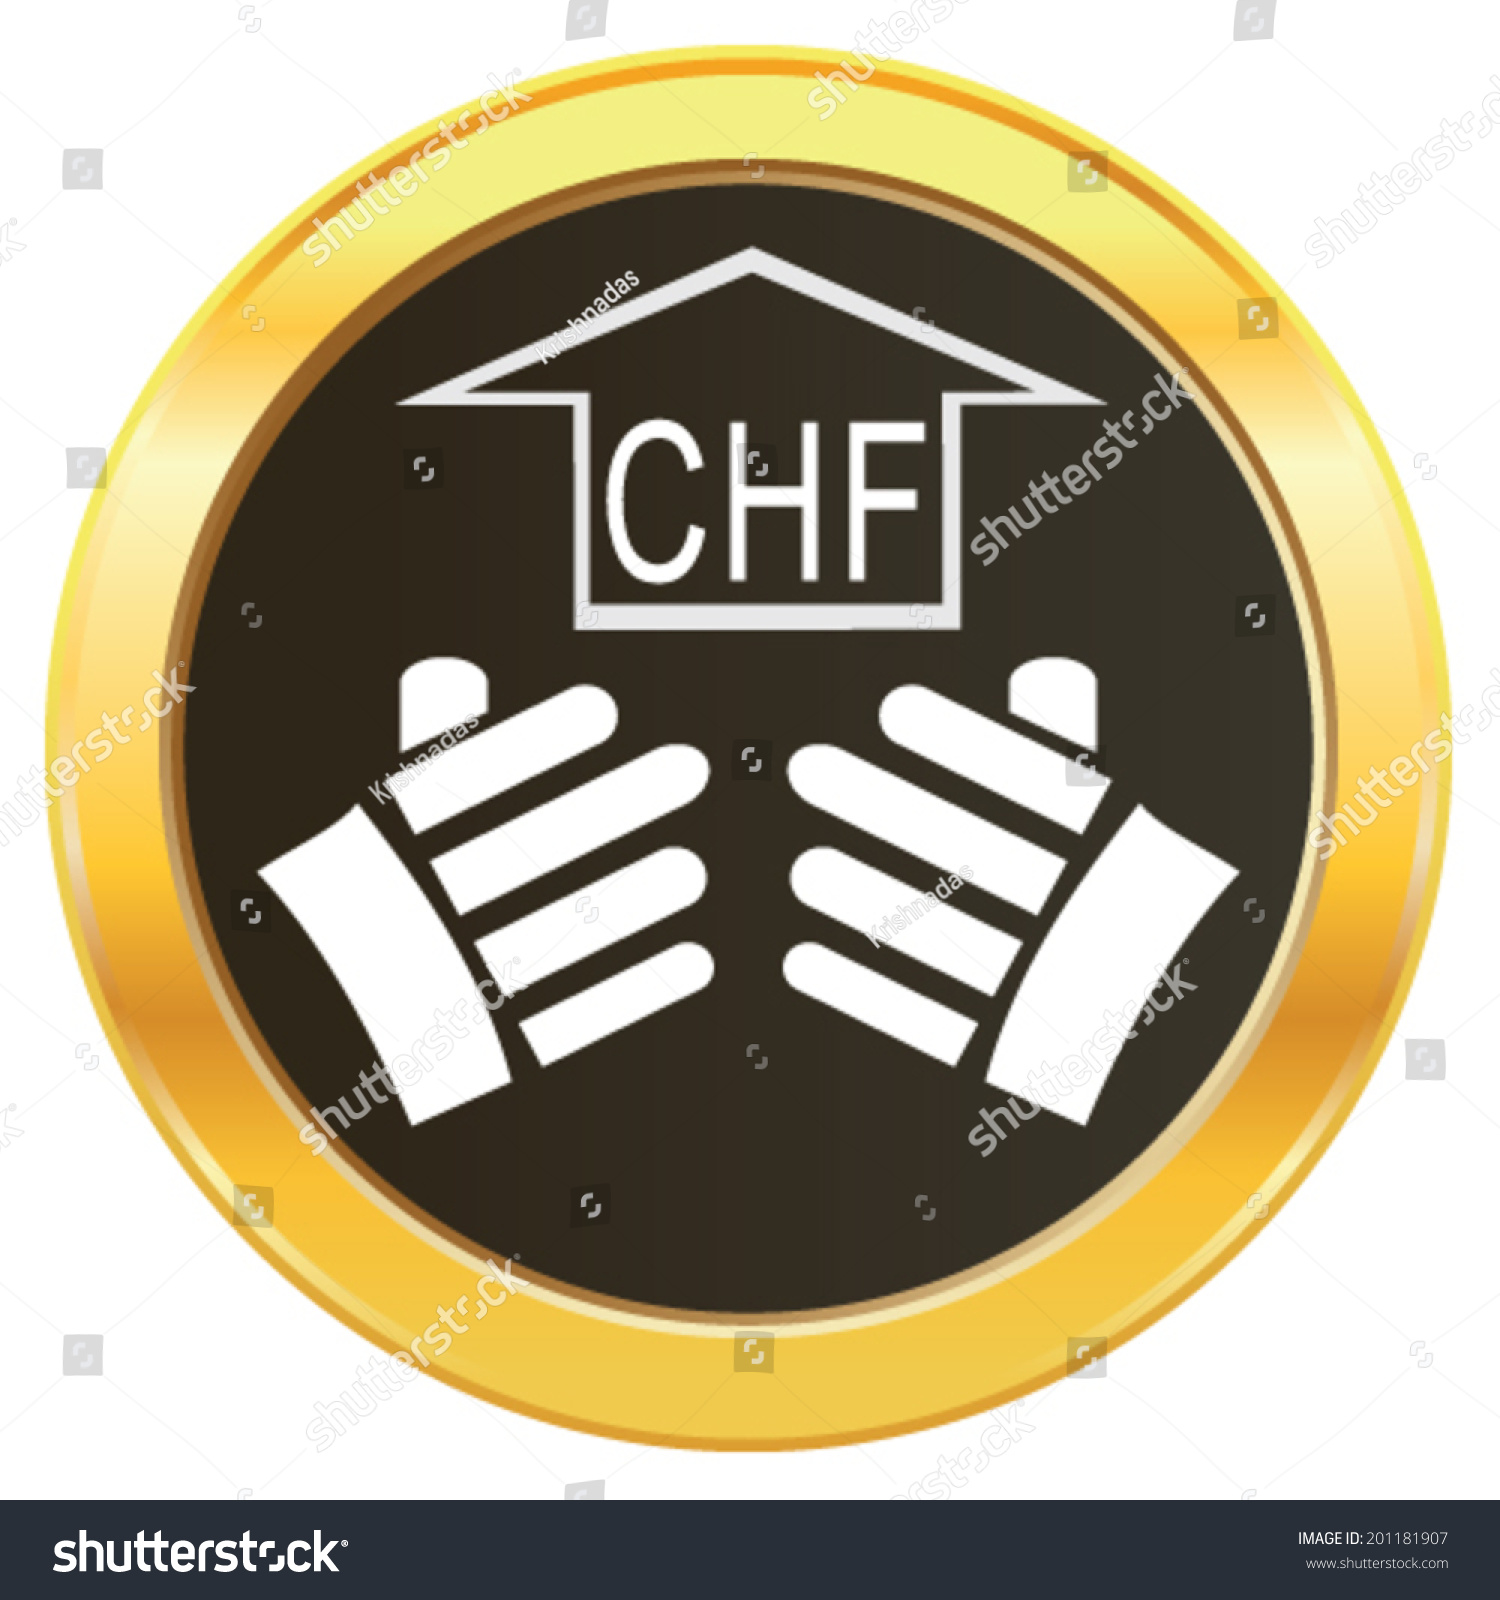 Currency chf symbol choice image symbols and meanings swiss franc wikipedia banknotesedit biocorpaavc vector design hand lifting growth liechtenstein stock vector vector design of hand lifting the growth of buycottarizona Images